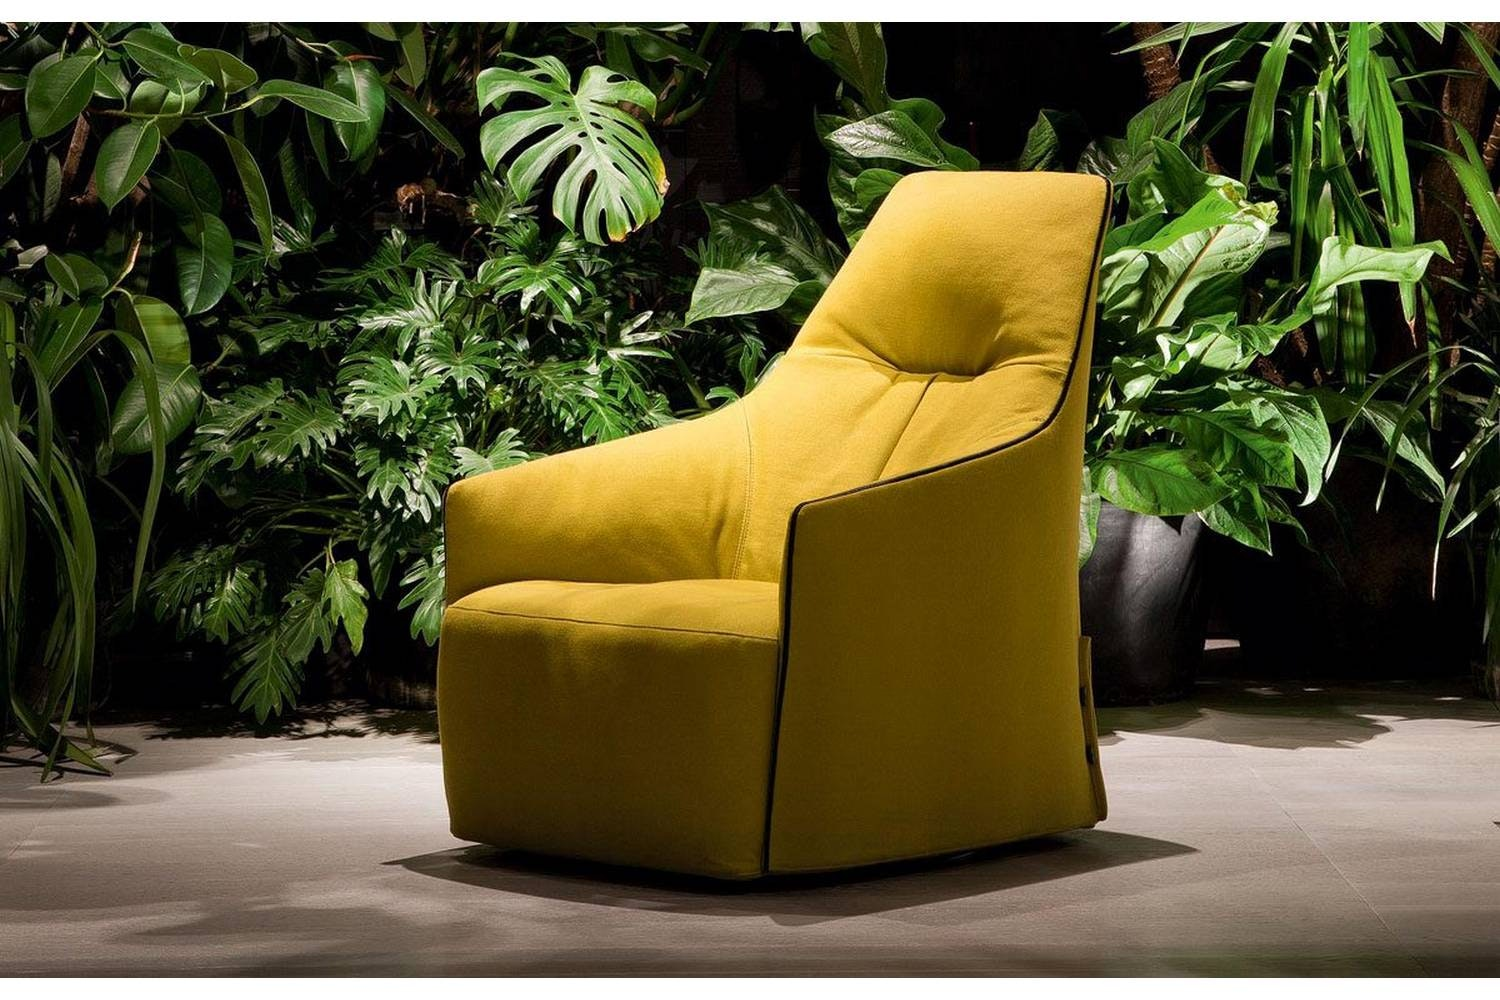 Santa Monica Armchair by J. M. Massaud for Poliform